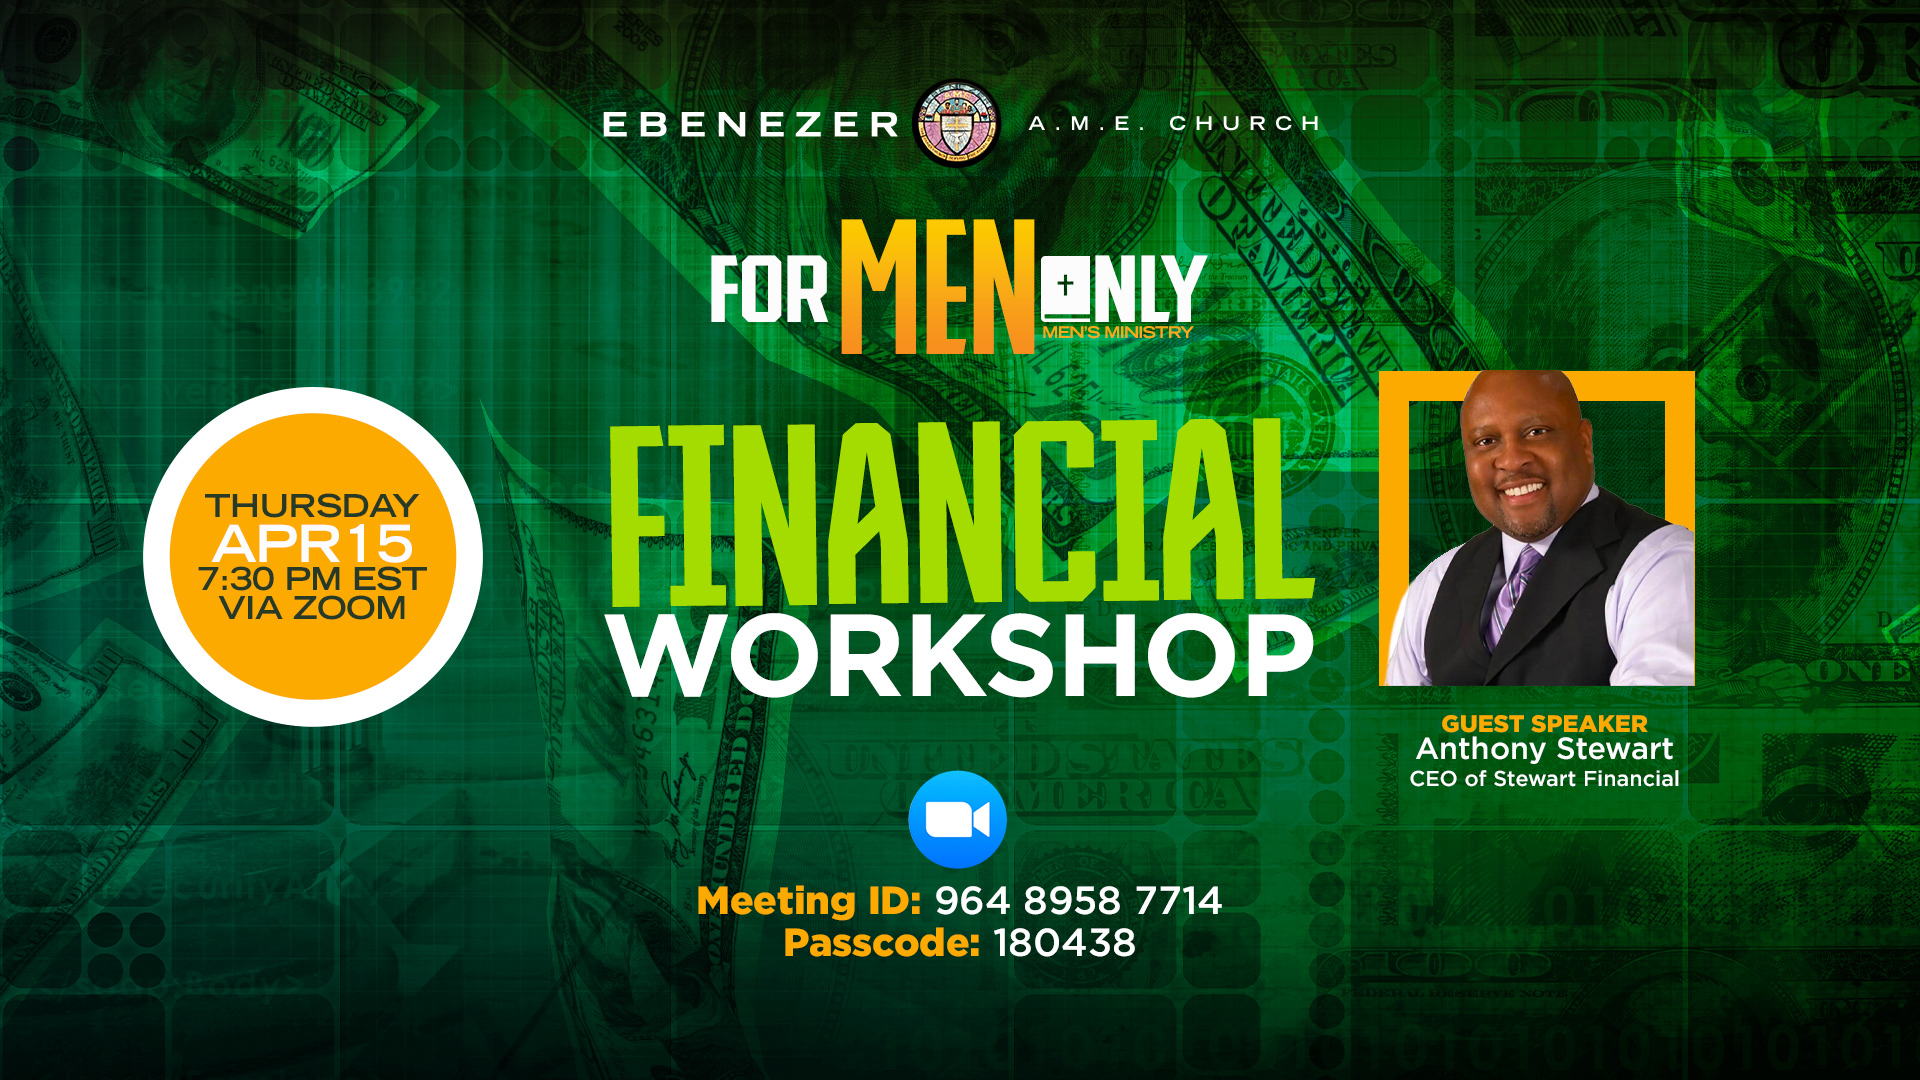 Men's Financial Workshop